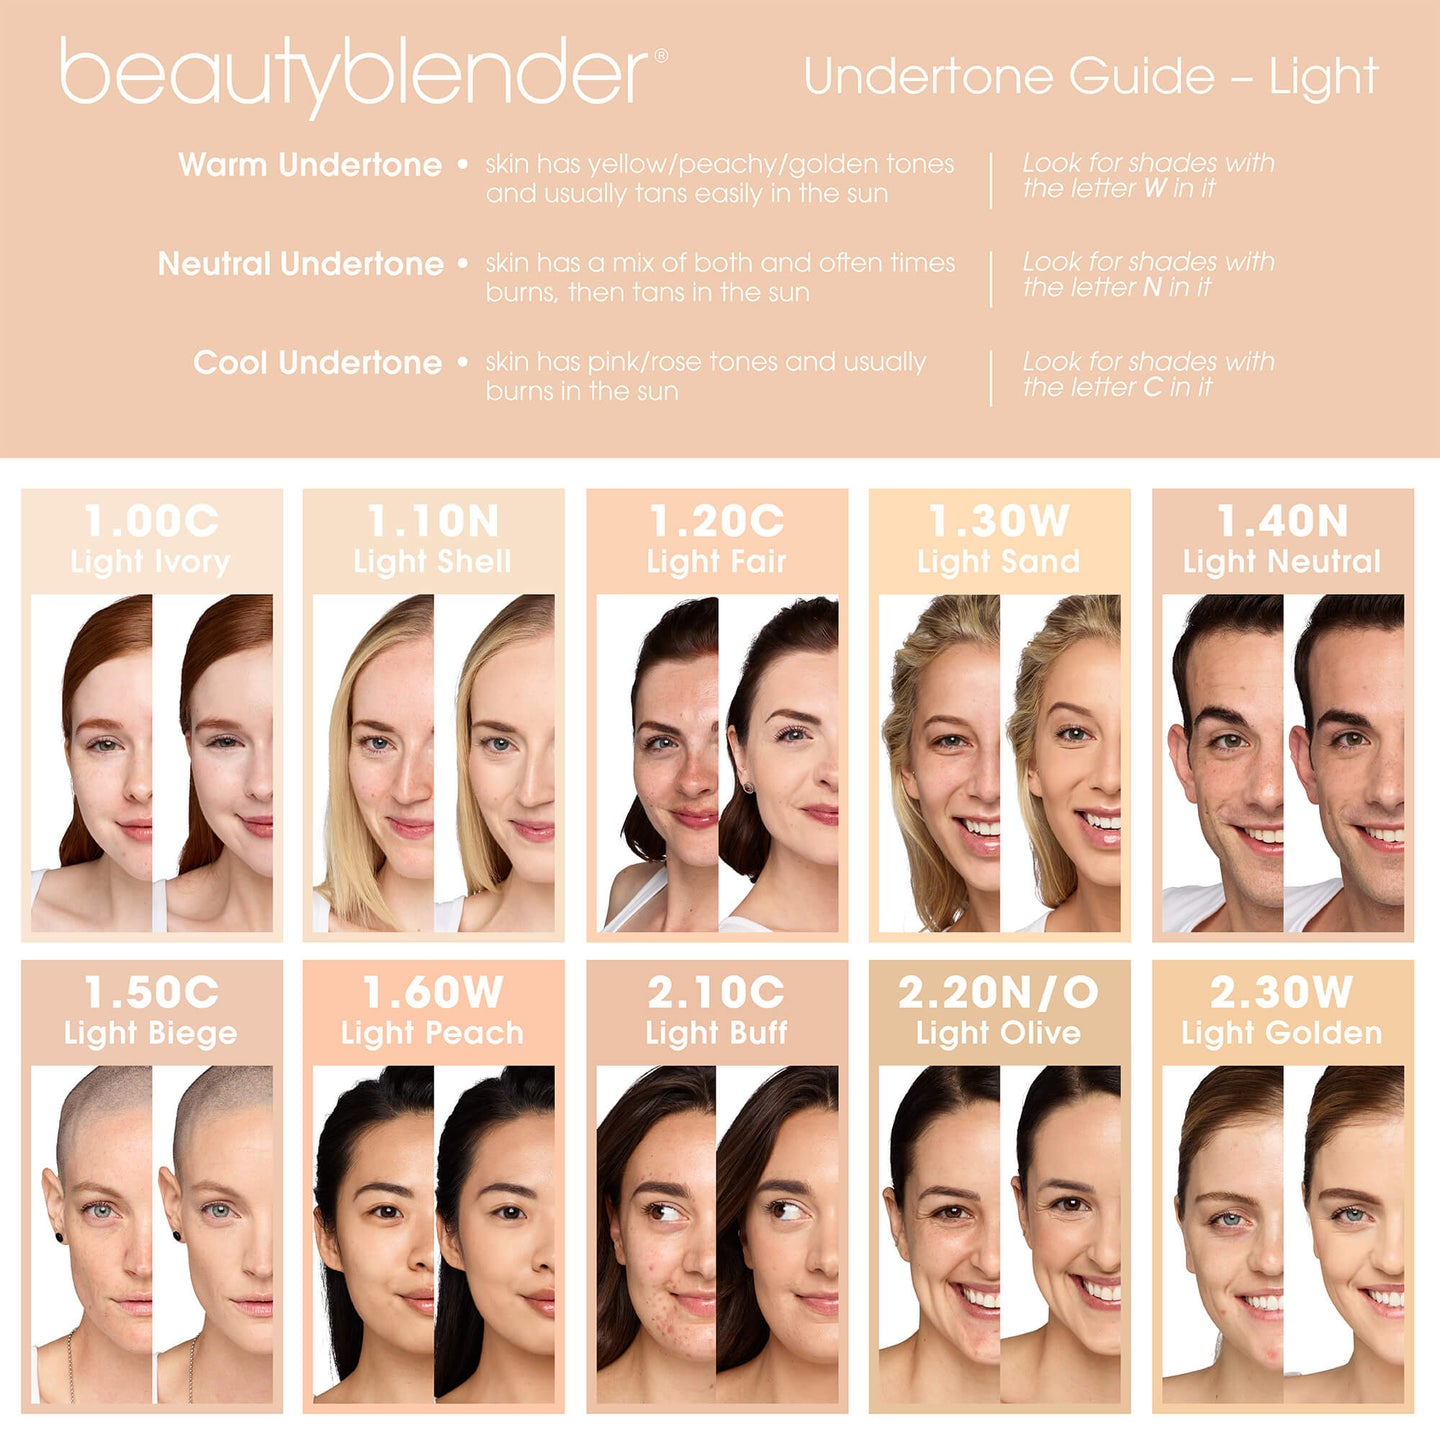 Bounce Foundation Shade Finder